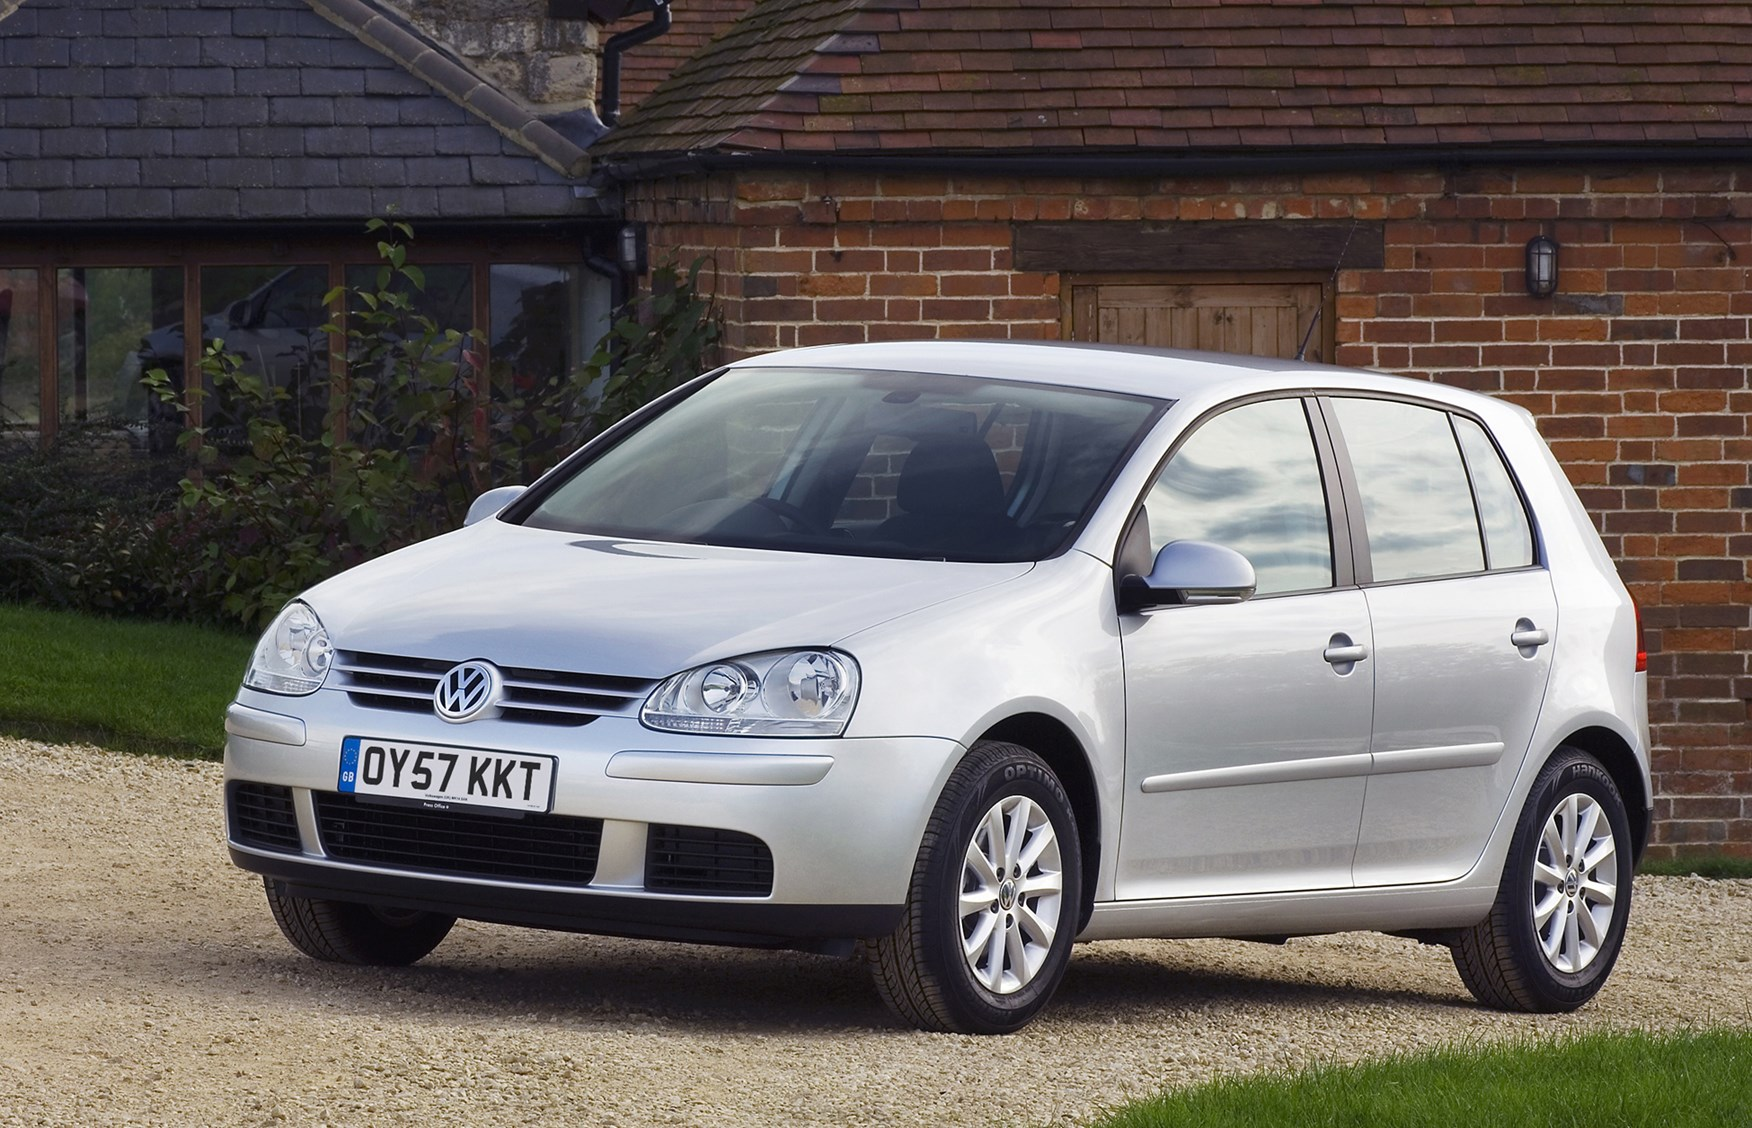 Volkswagen Golf Hatchback Review 2004 2008 Parkers